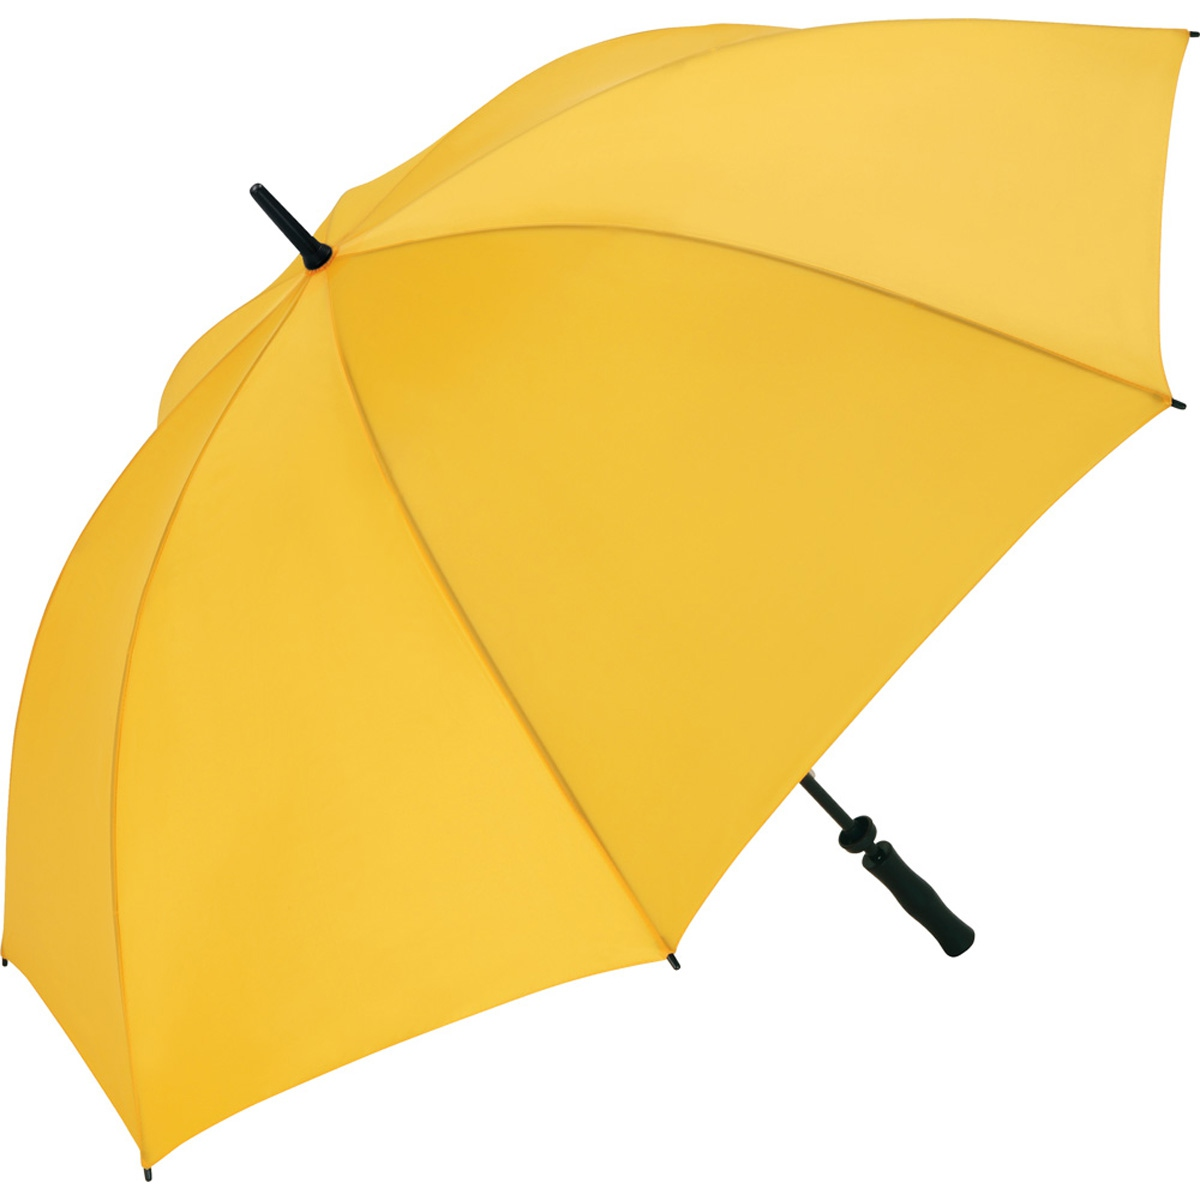 parapluie golf grande taille 130 cm windproof 2235 jaune. Black Bedroom Furniture Sets. Home Design Ideas